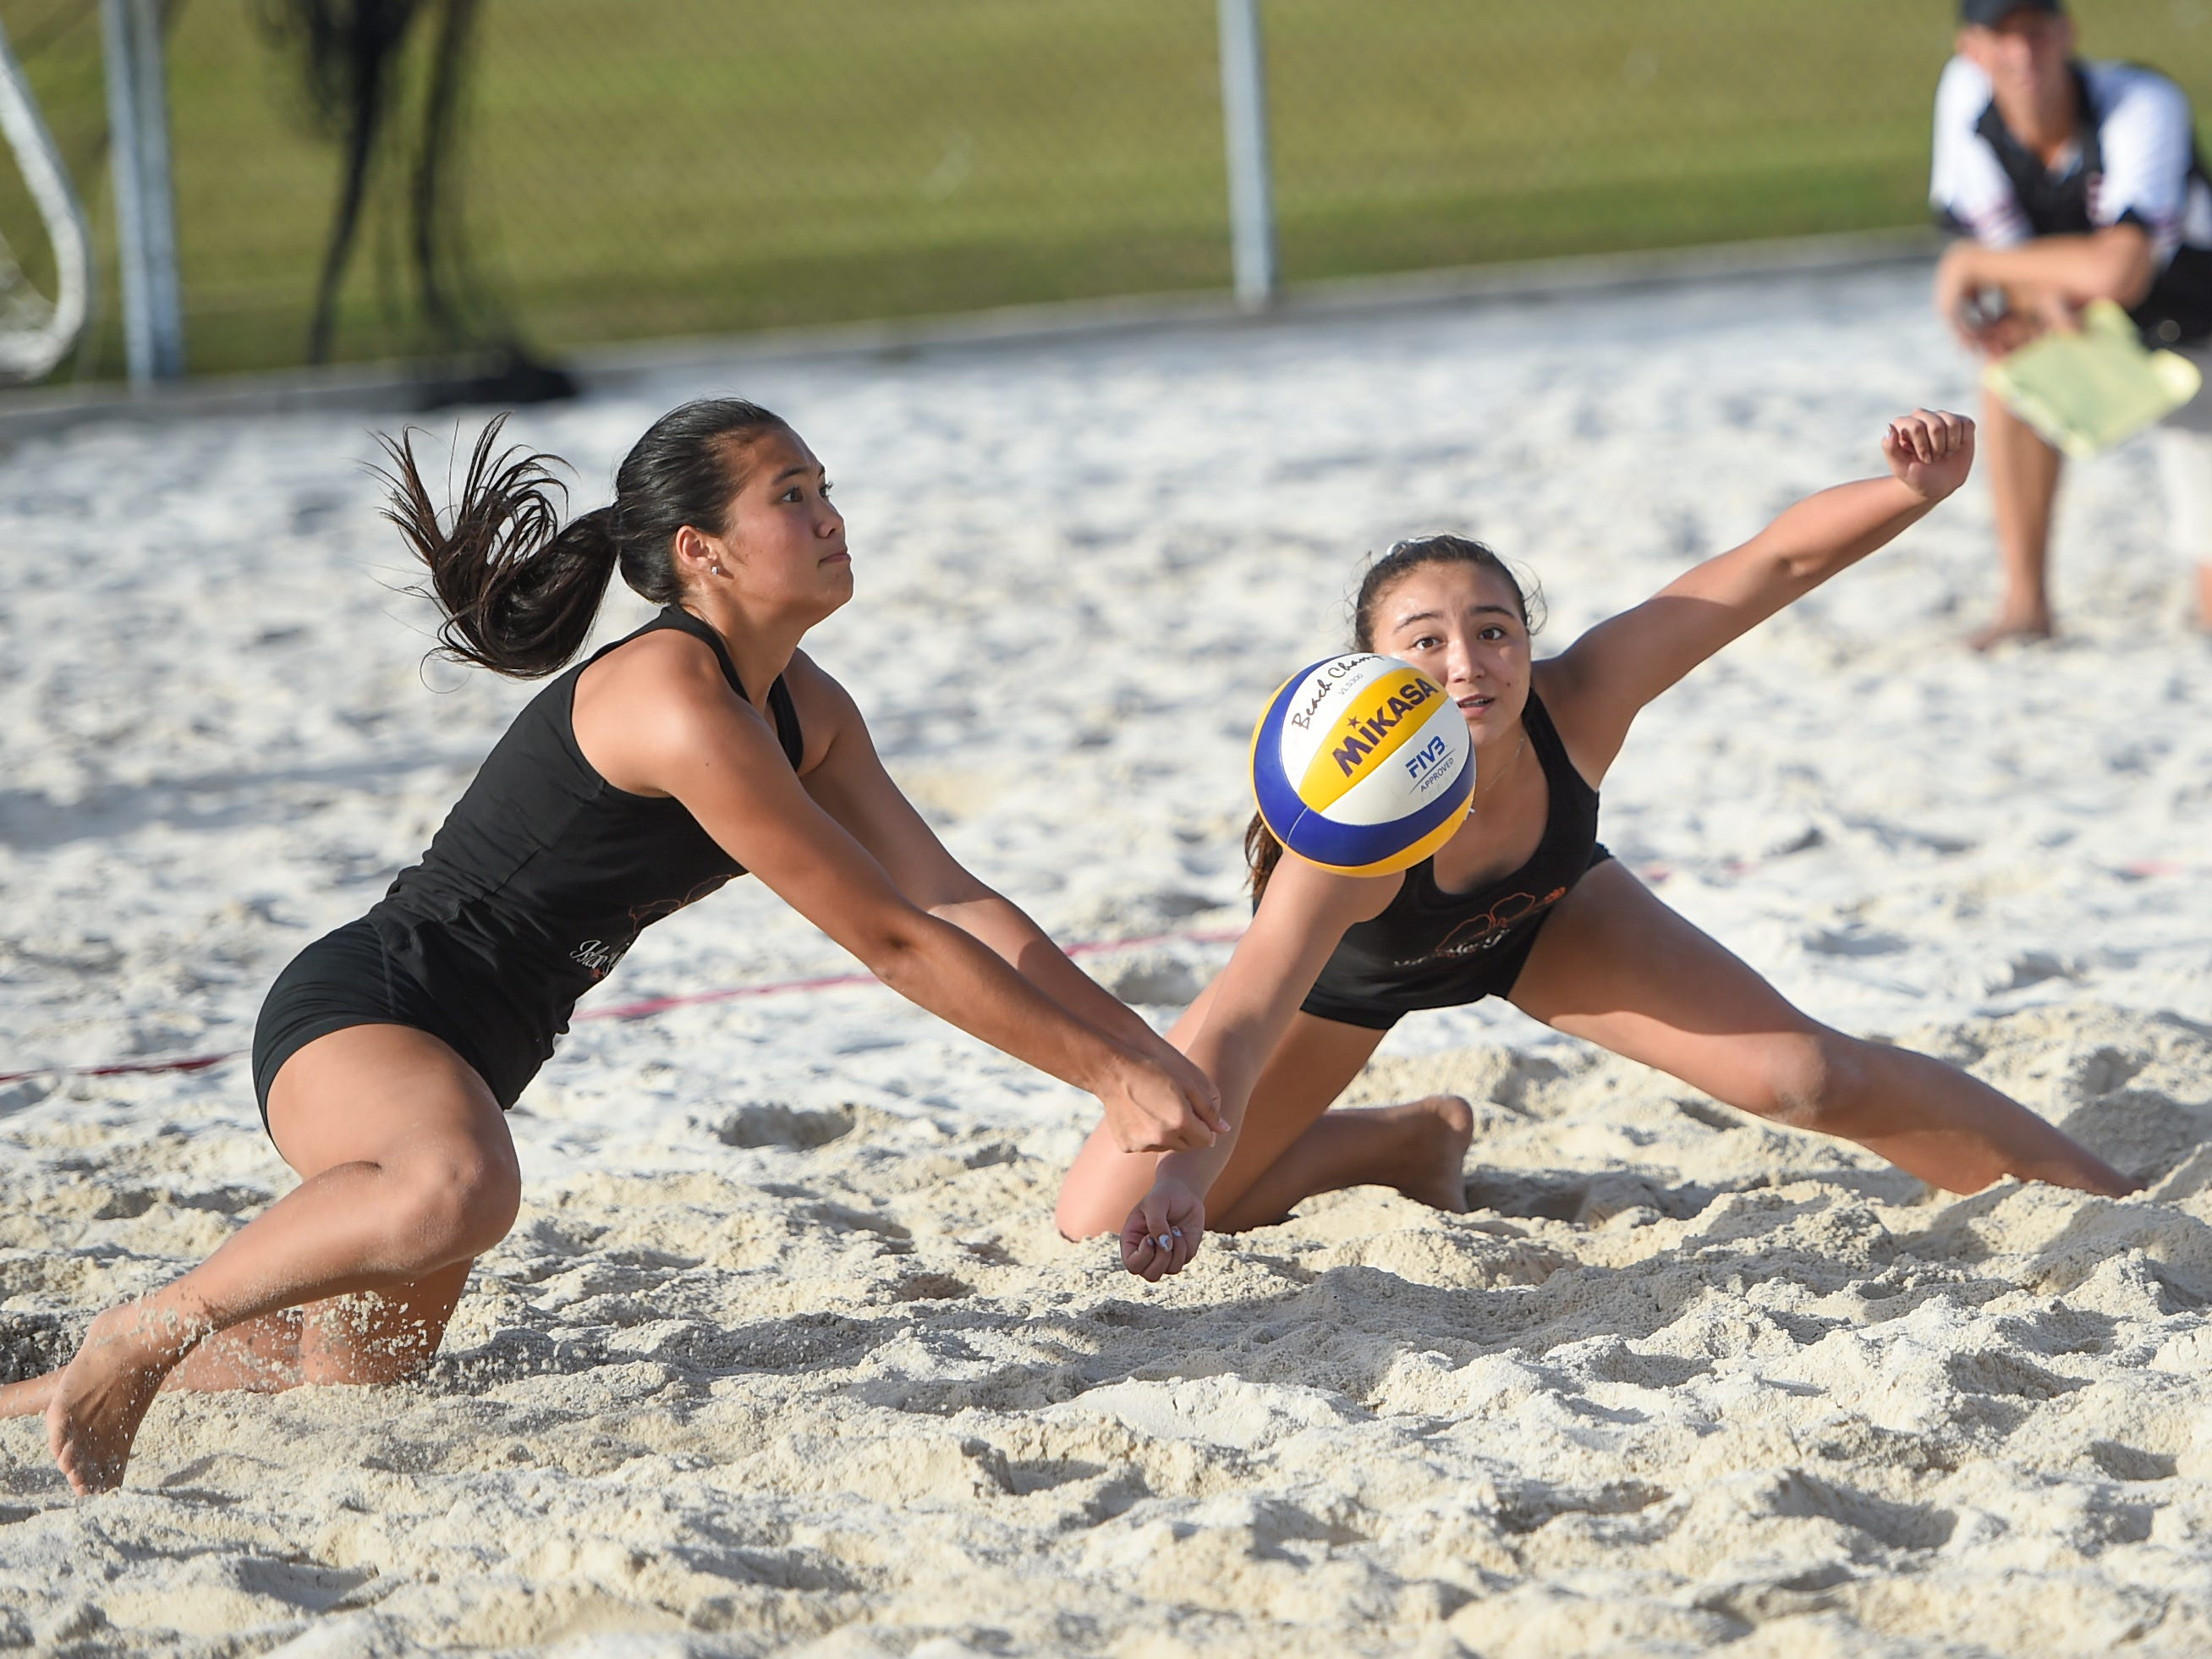 St. John's White teammates Hallie Wigsten, left, and Tylee Shepherd dig on a play during the IIAAG Beach Volleyball championship game at the Guam Football Association National Training Center in Dededo, March 12, 2019.